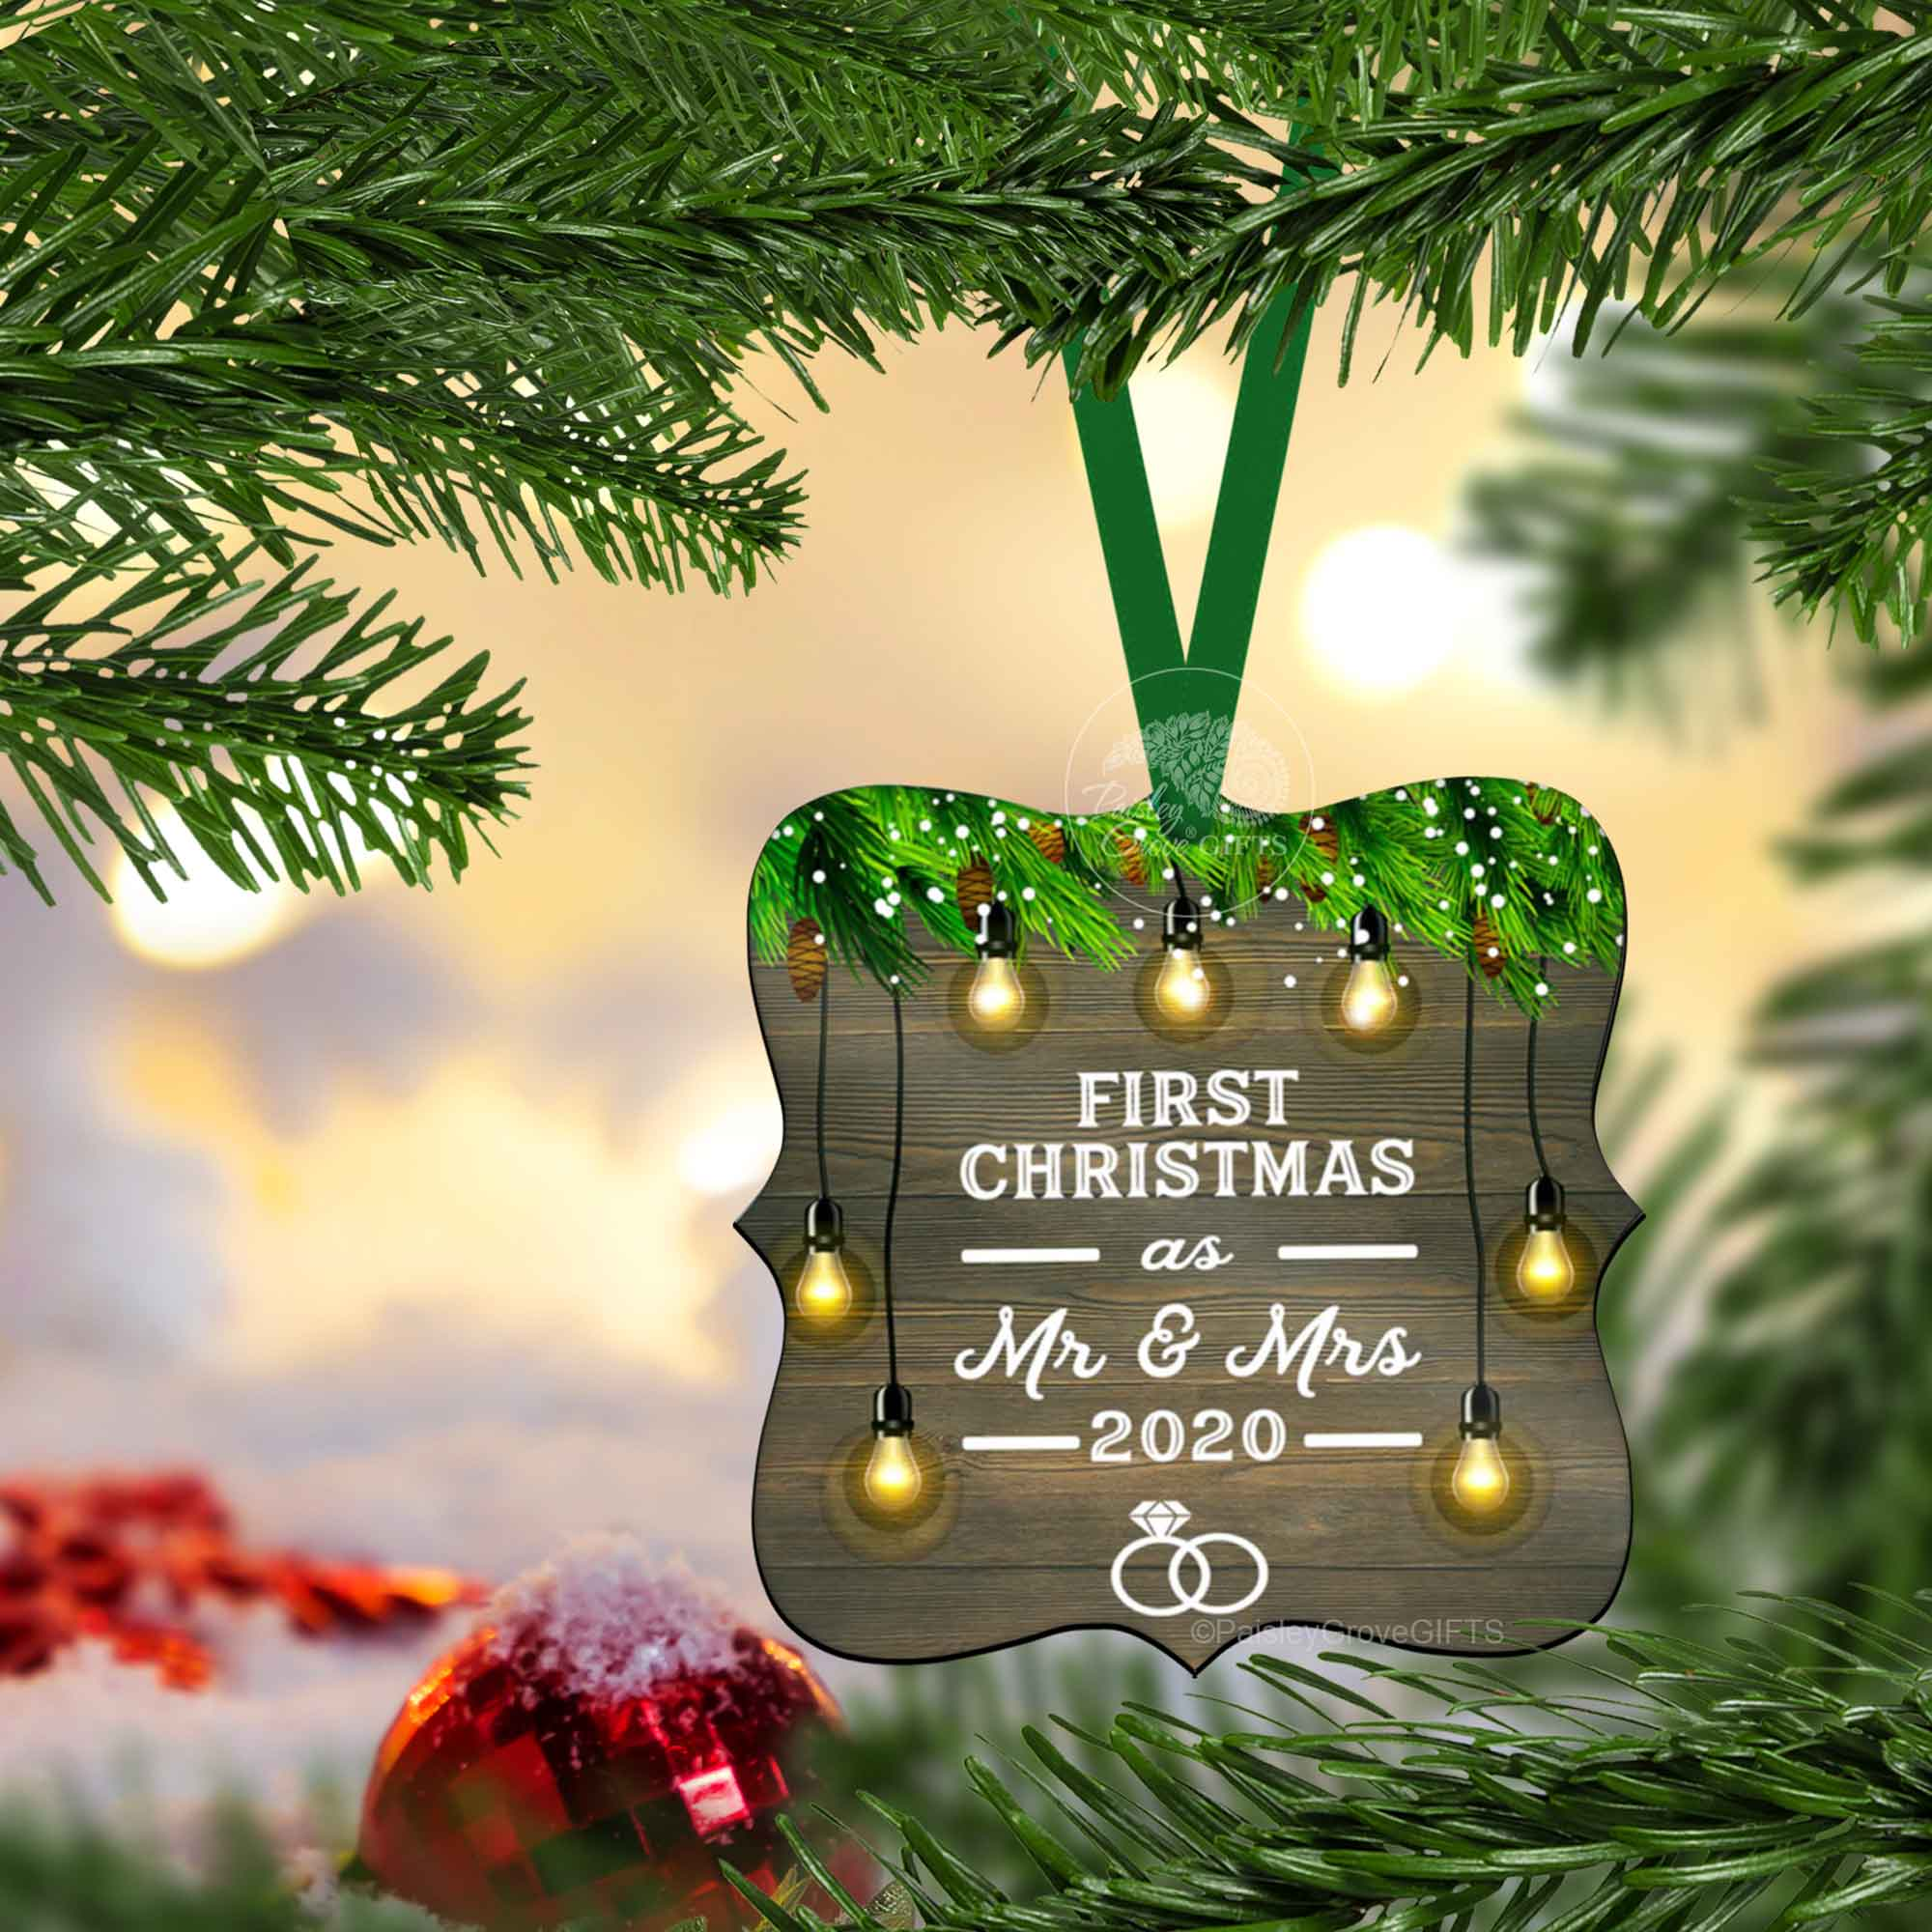 CopyrightPaisleyGroveGIFTS S510c 1st Xmas as Married Couple Ornament on Christmas Tree Holiday Decor